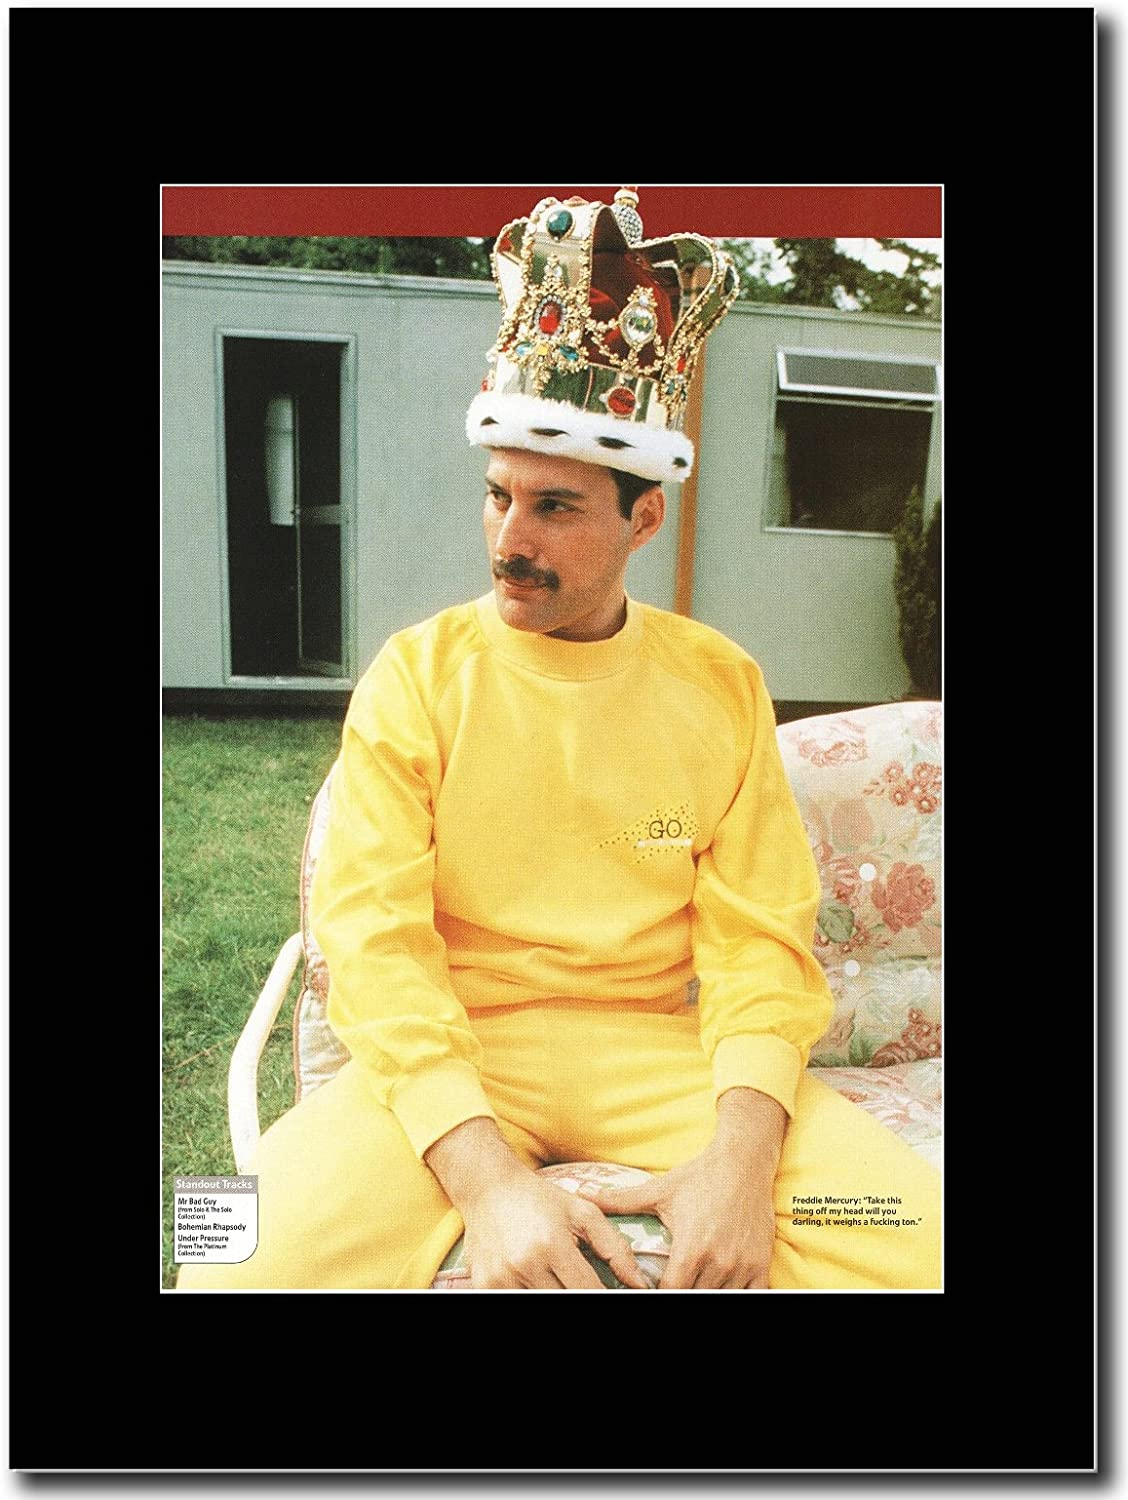 gasolinerainbows queen freddie mercury wembley back stage queen matted mounted magazine promotional artwork on a black mount amazon co uk kitchen home matted mounted magazine promotional